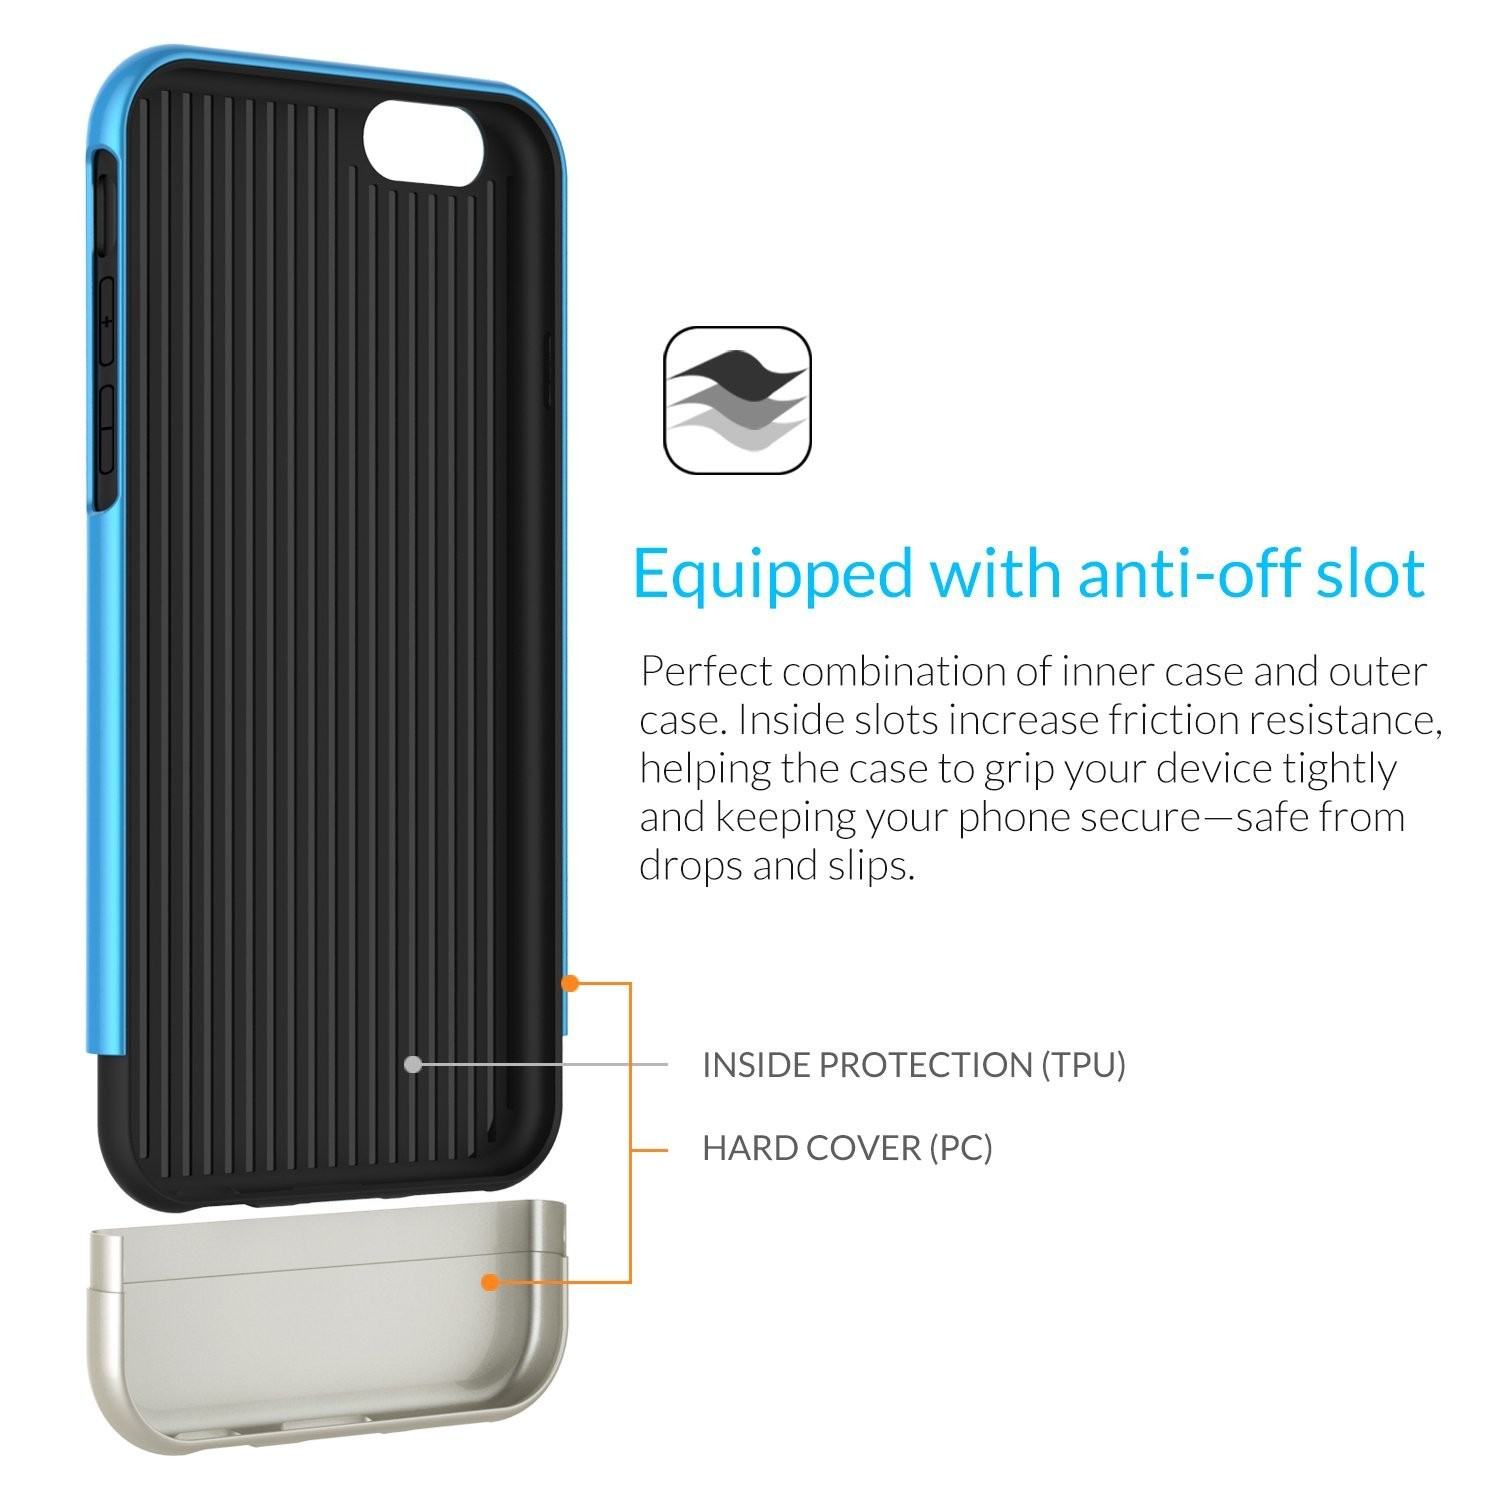 """iPhone 6 Case, FRiEQ Dual Layer Protection Slim Trendy Hard Case for Apple iPhone 6 (4.7"""") - Safe from Drops and Slips - Blue, FR-DLP-BU"""